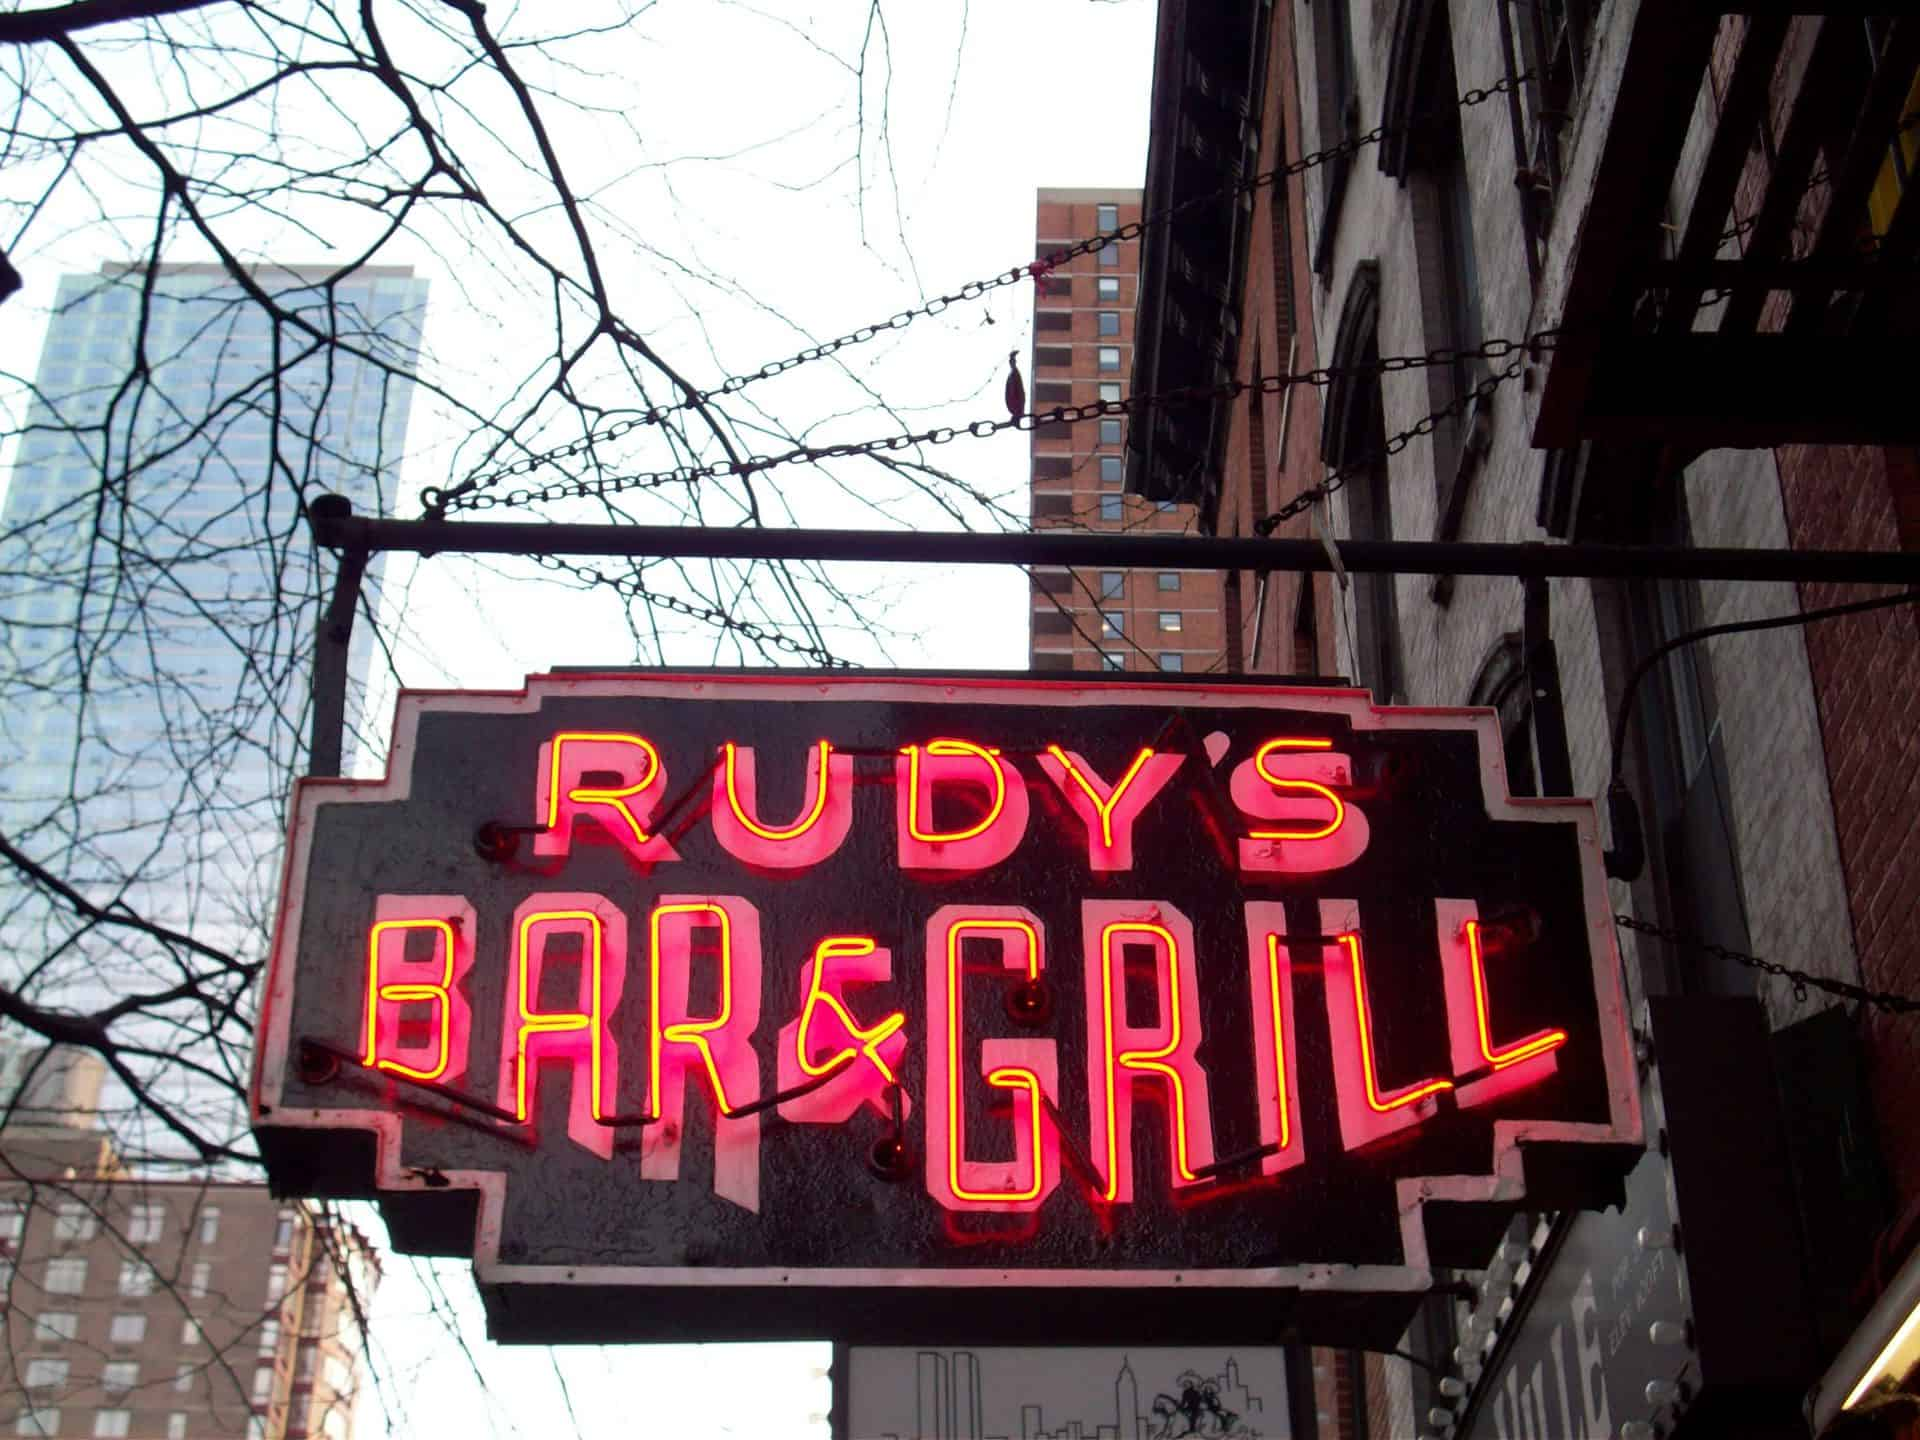 rudys-bar-and-grill-sign-new-york-city